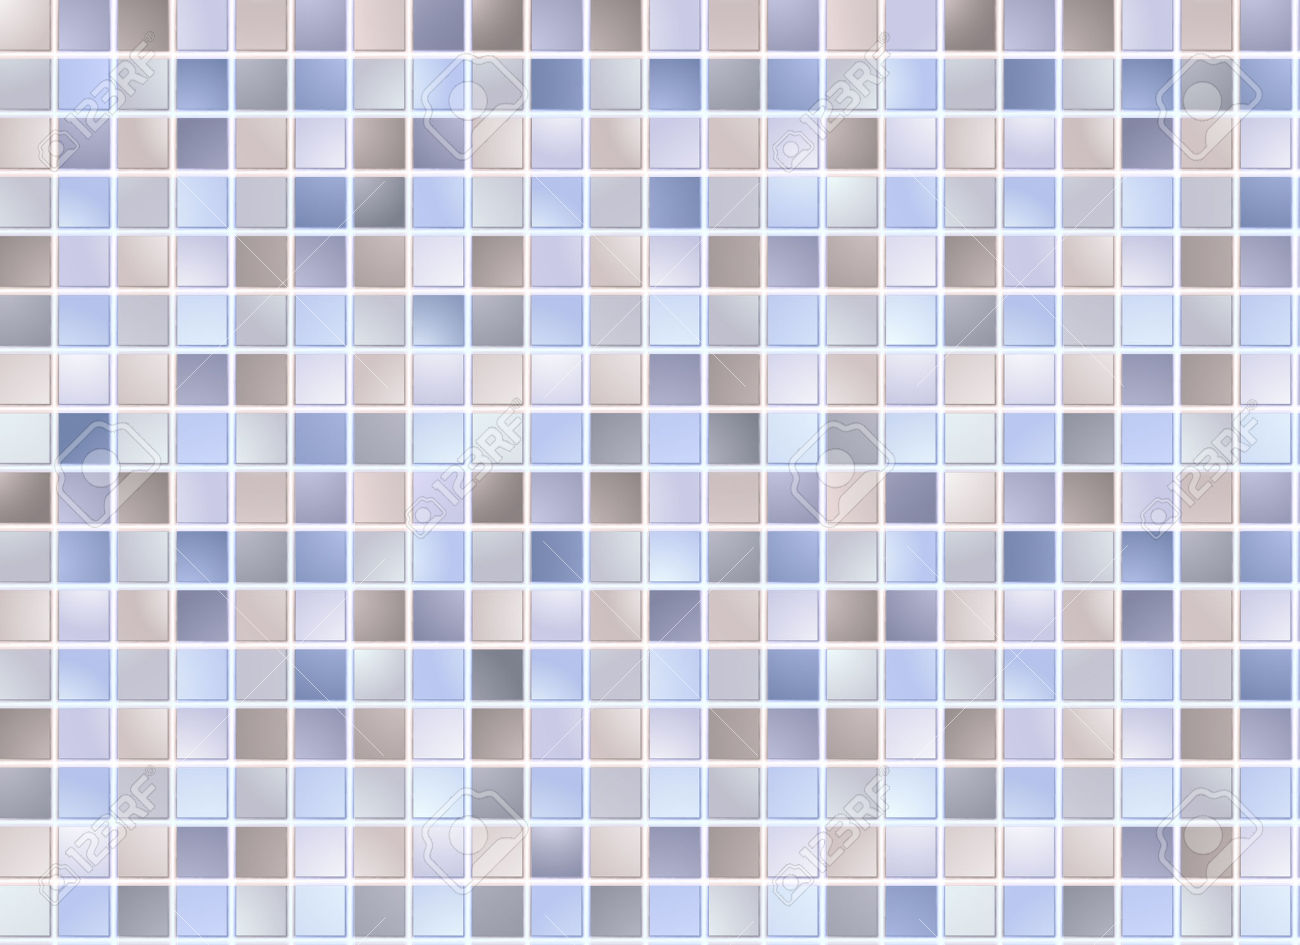 Seamless Blue Square Tiles Pattern Royalty Free Cliparts, Vectors.